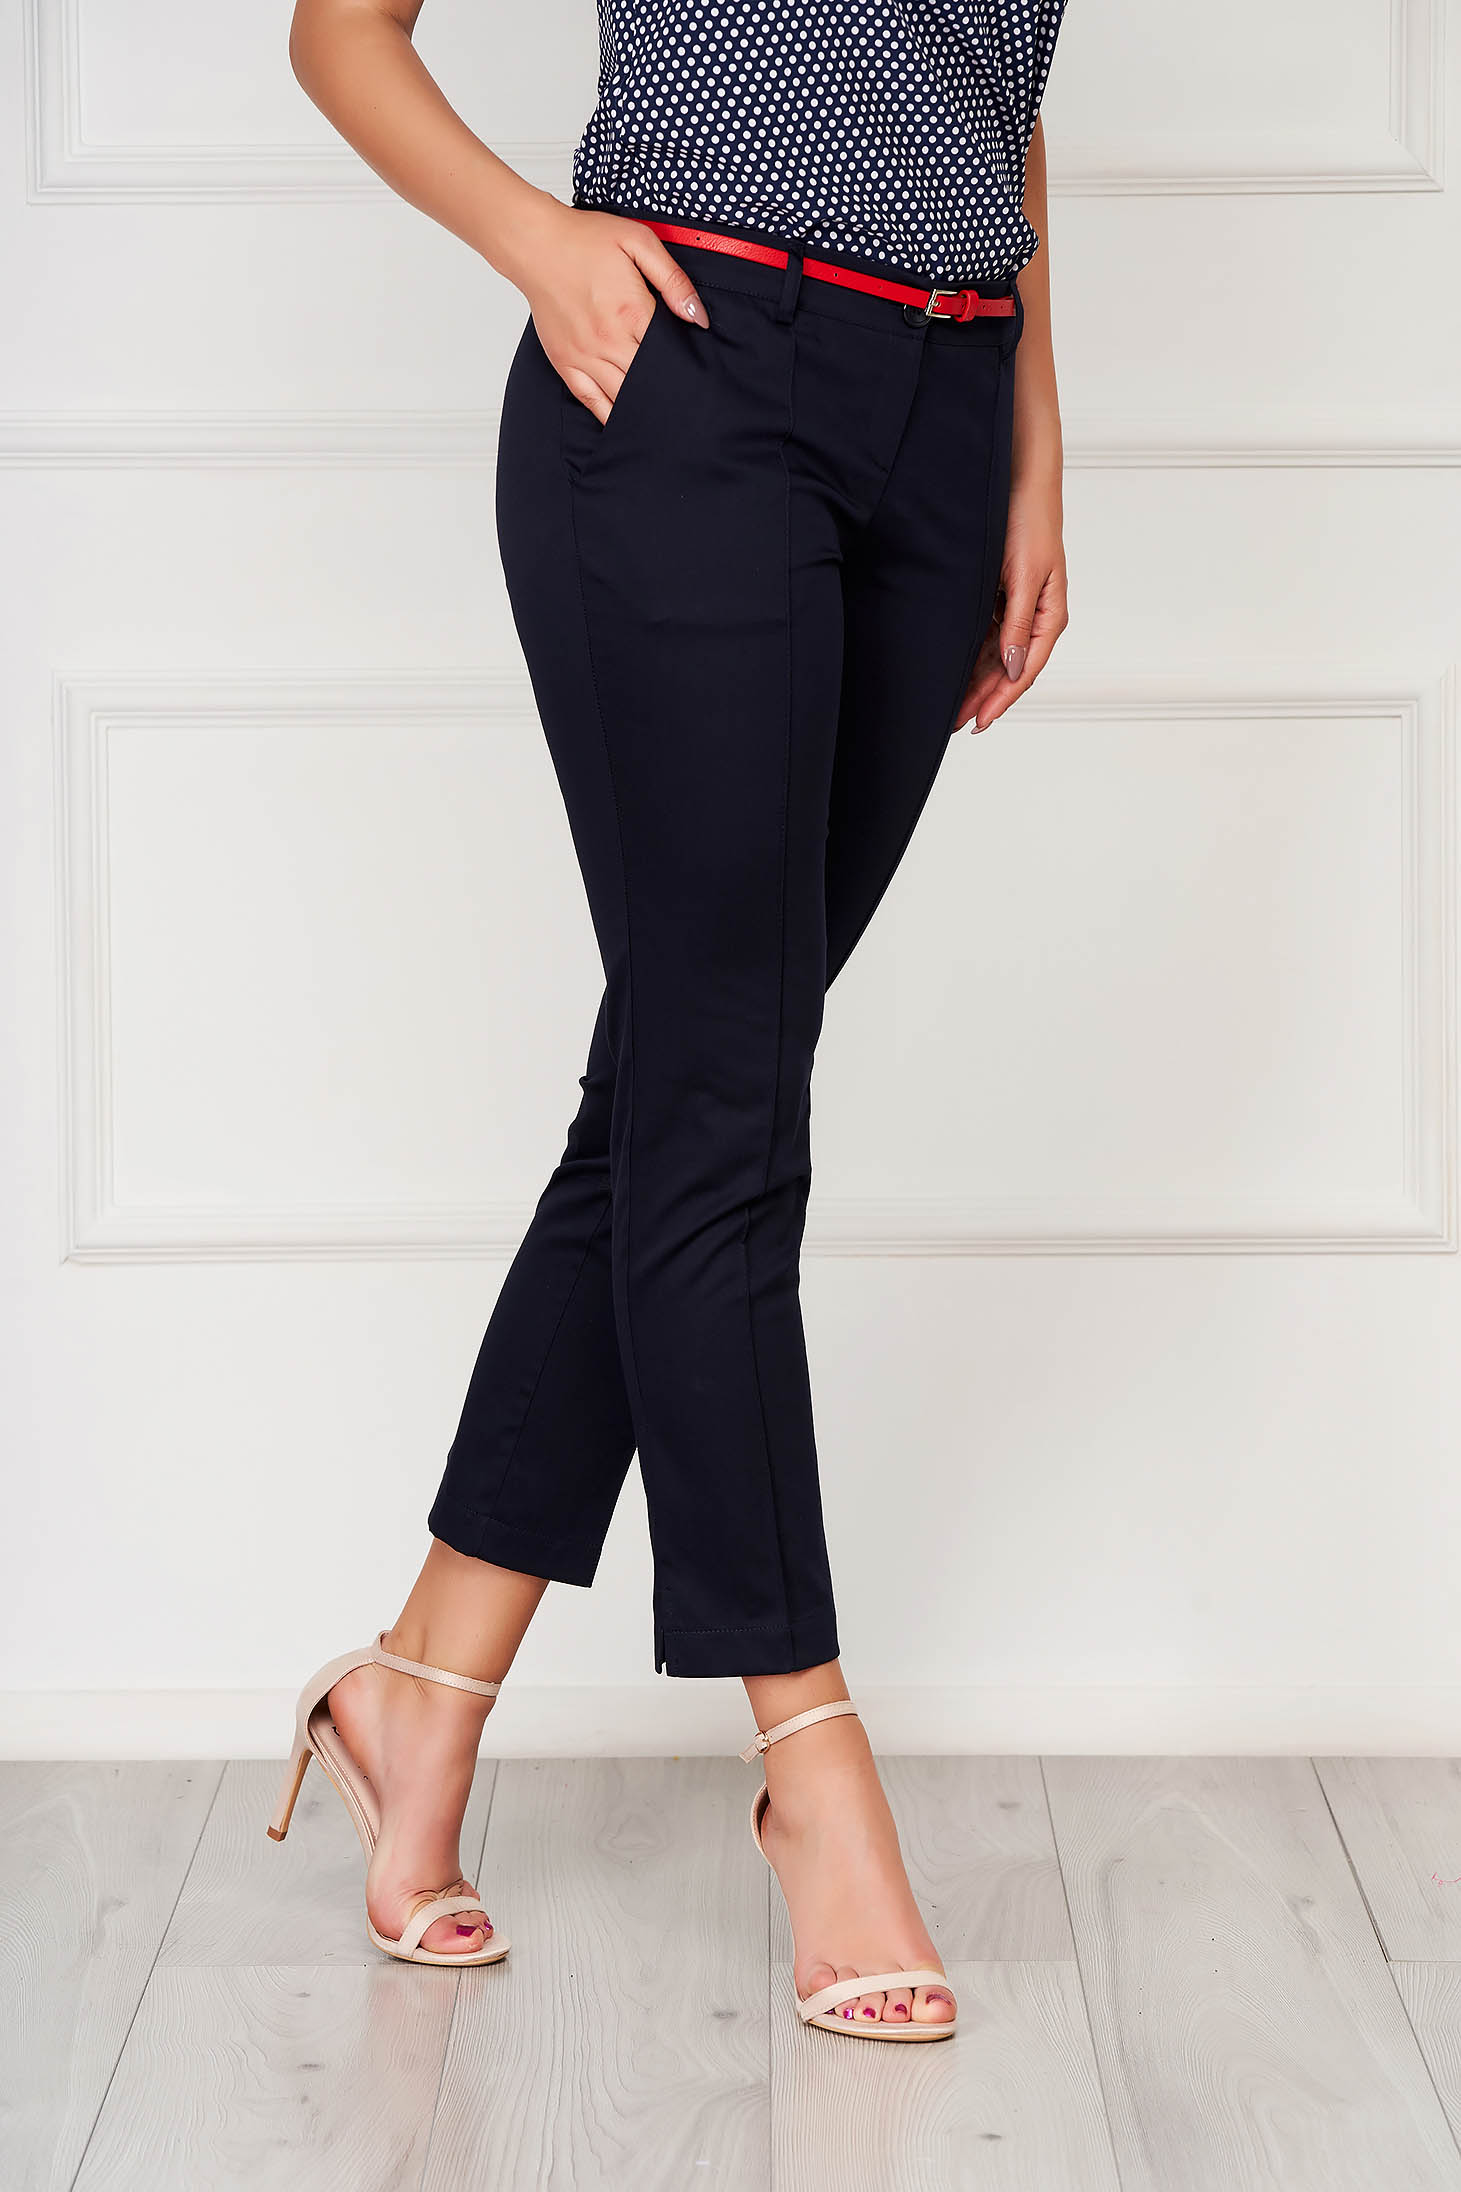 Darkblue trousers office cotton conical with pockets